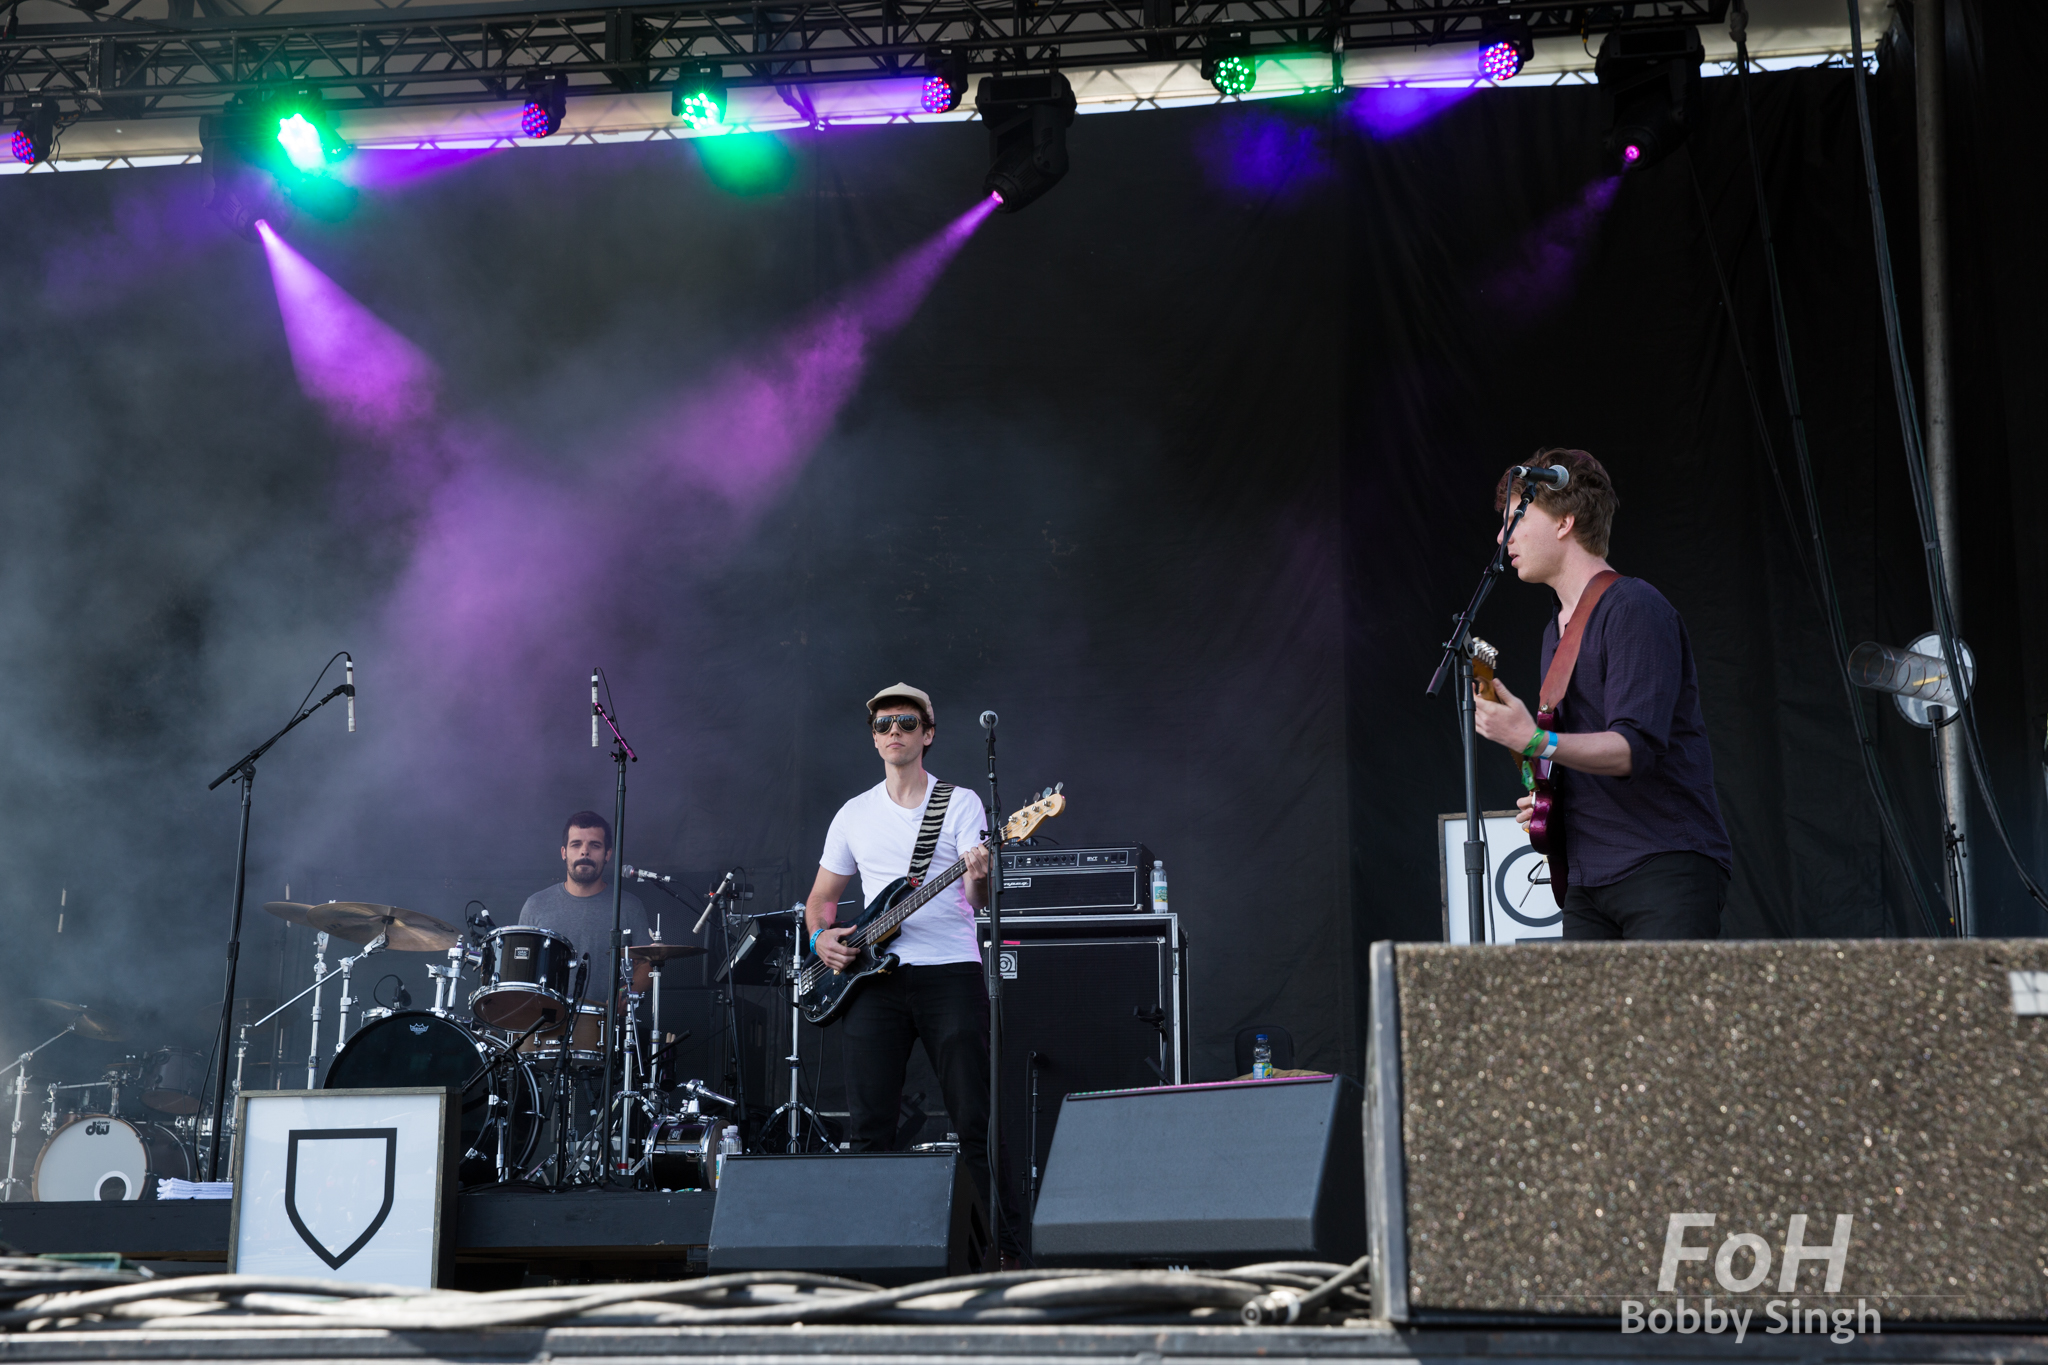 Reuben and the Dark perform at the 2018 Field Trip Music & Arts Festival in Toronto